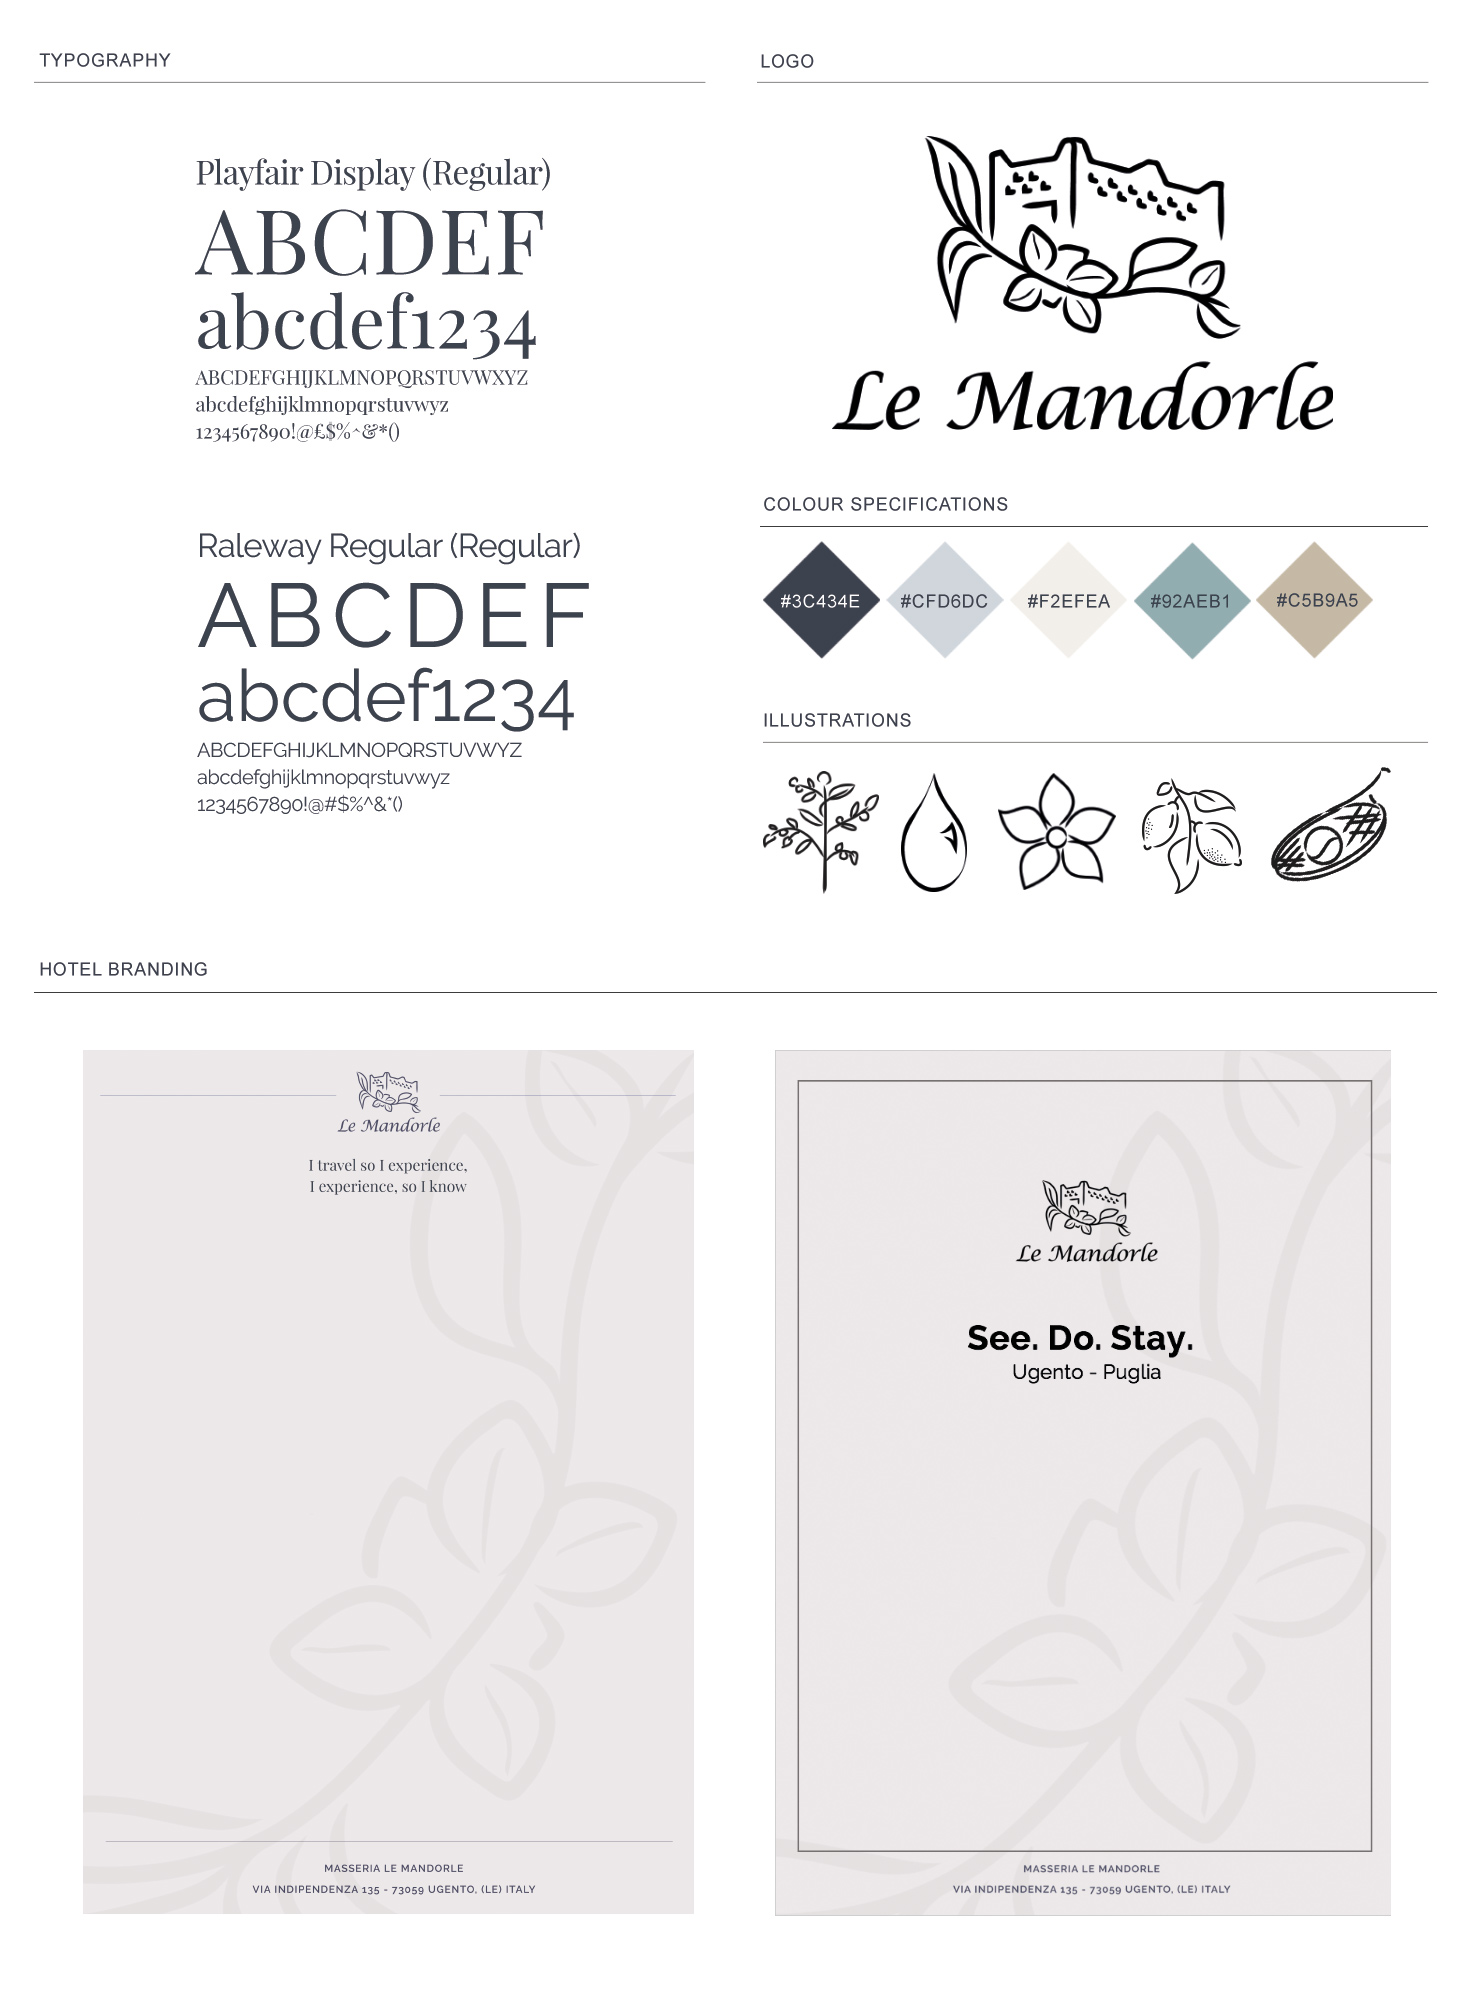 branding-design-style-guide-font-pairing-inspiration-ui-designs-sketches